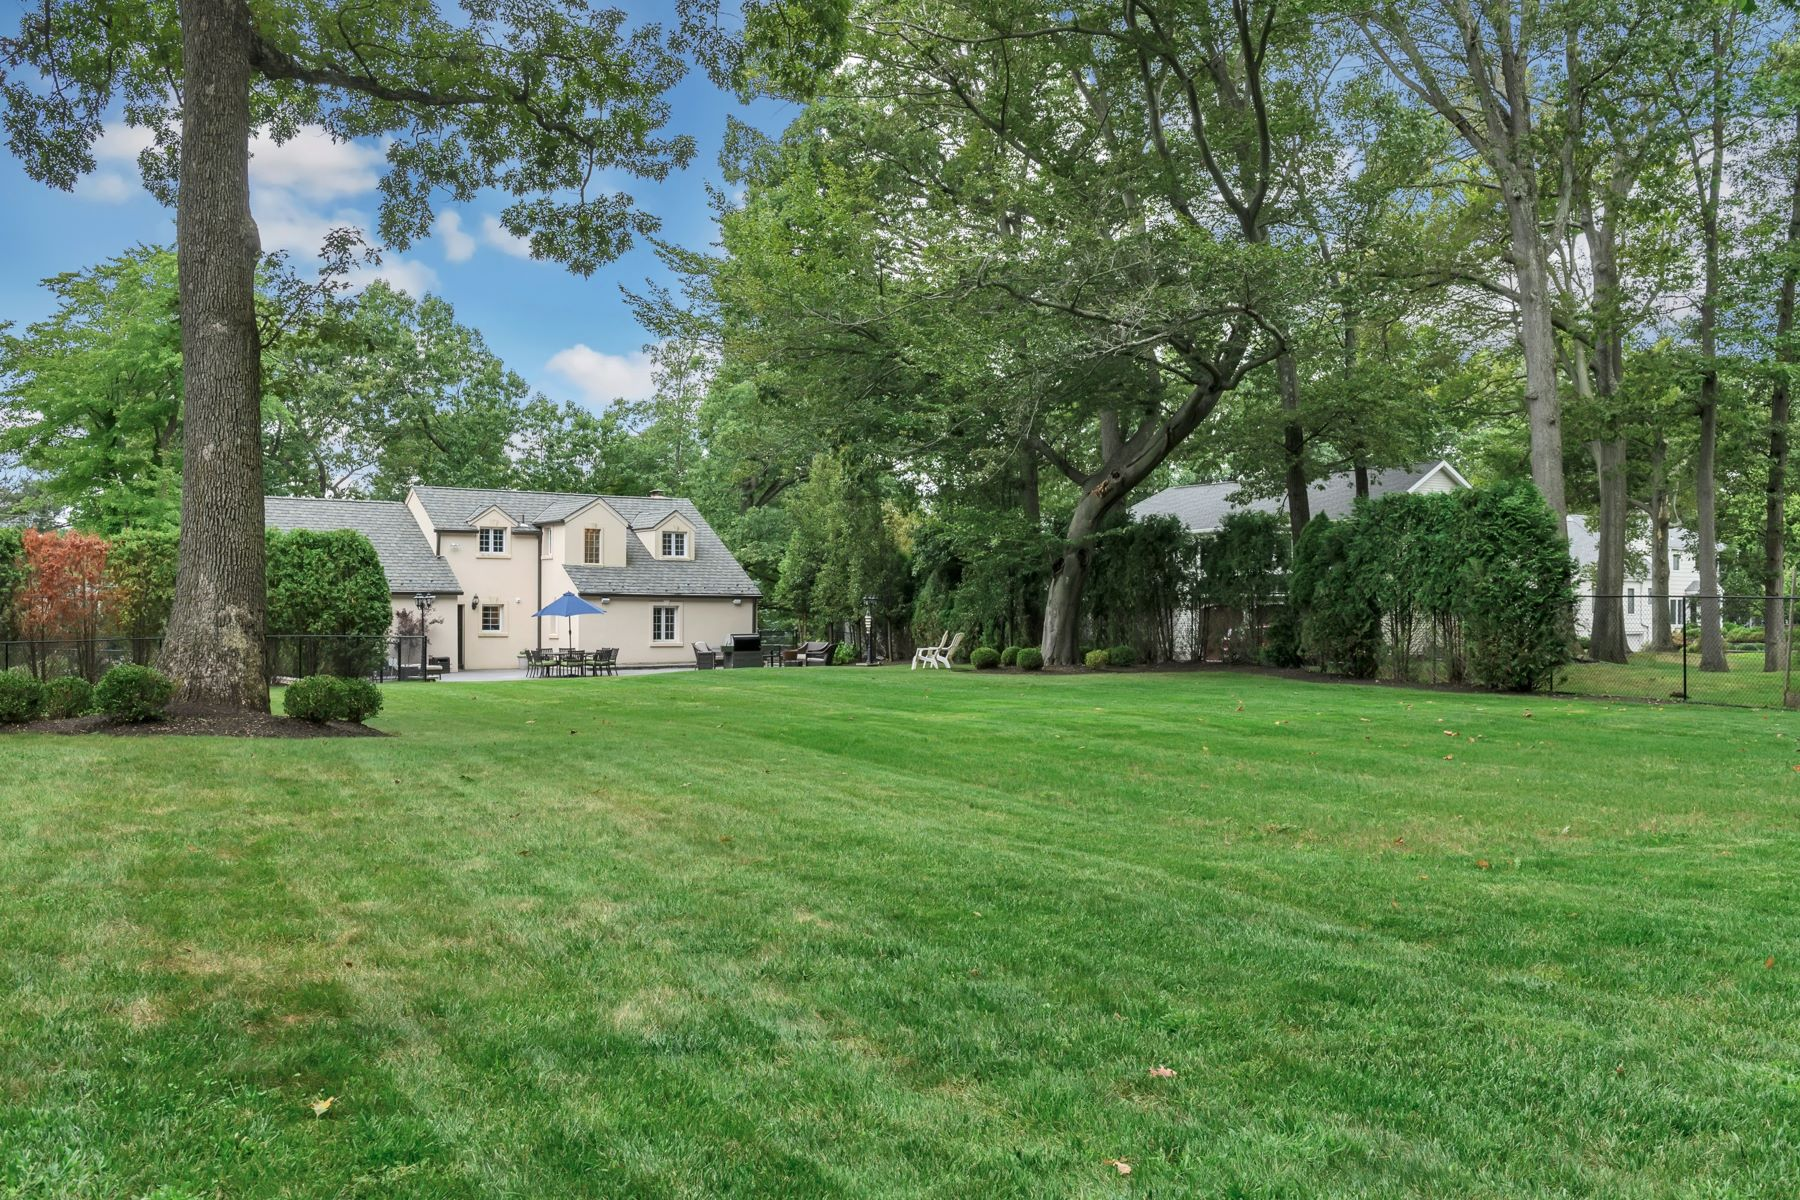 Single Family Homes for Sale at Tranquility 135 Parsonage Hill Road Short Hills, New Jersey 07078 United States